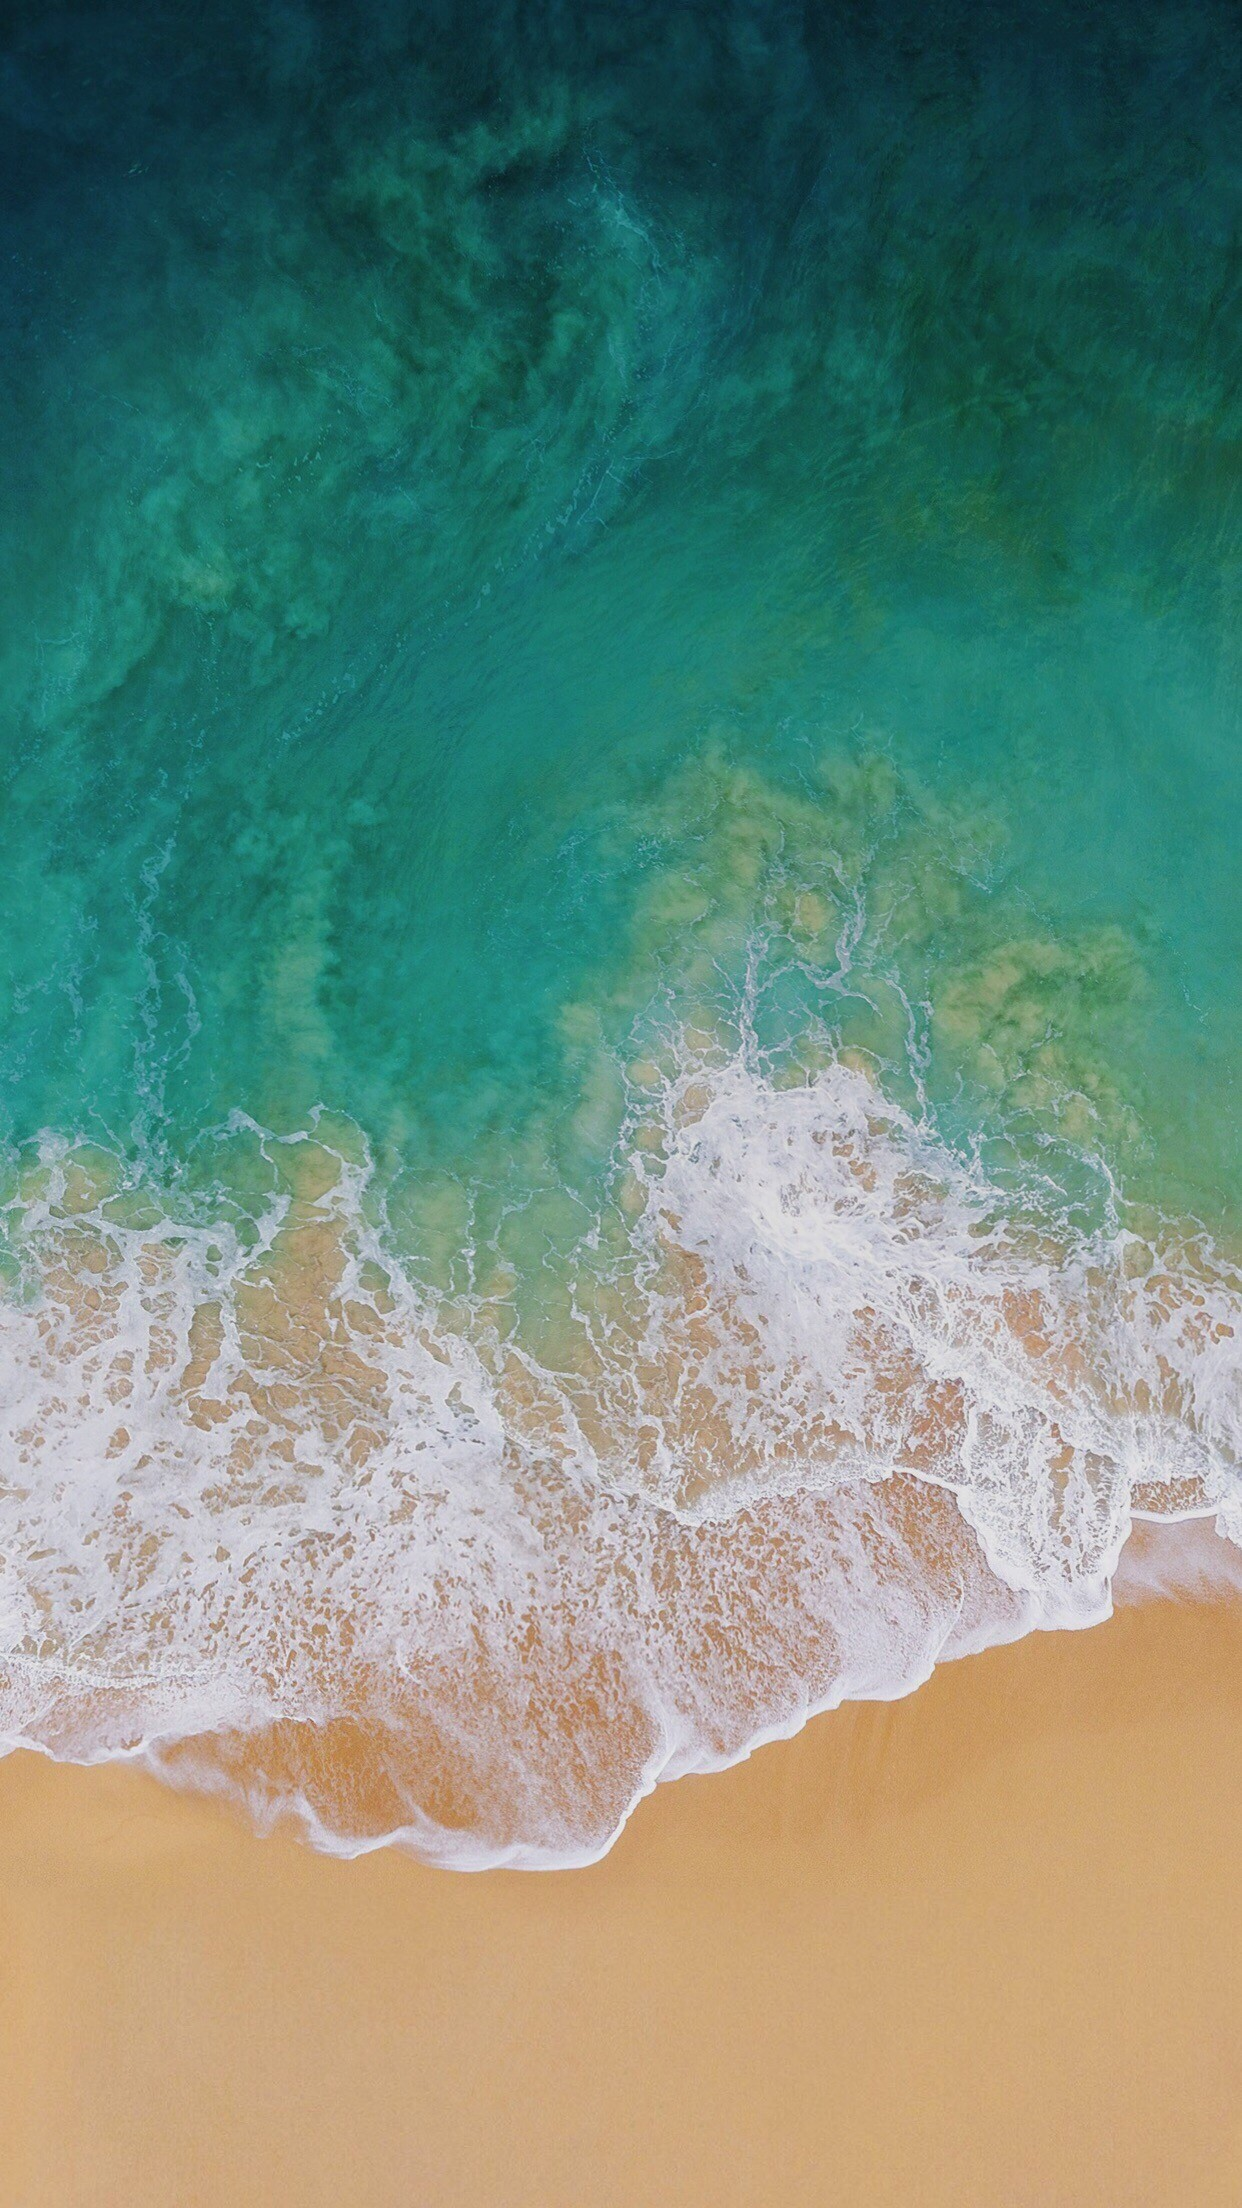 iOS 11 New Wallpaper for iPhone and iPad!